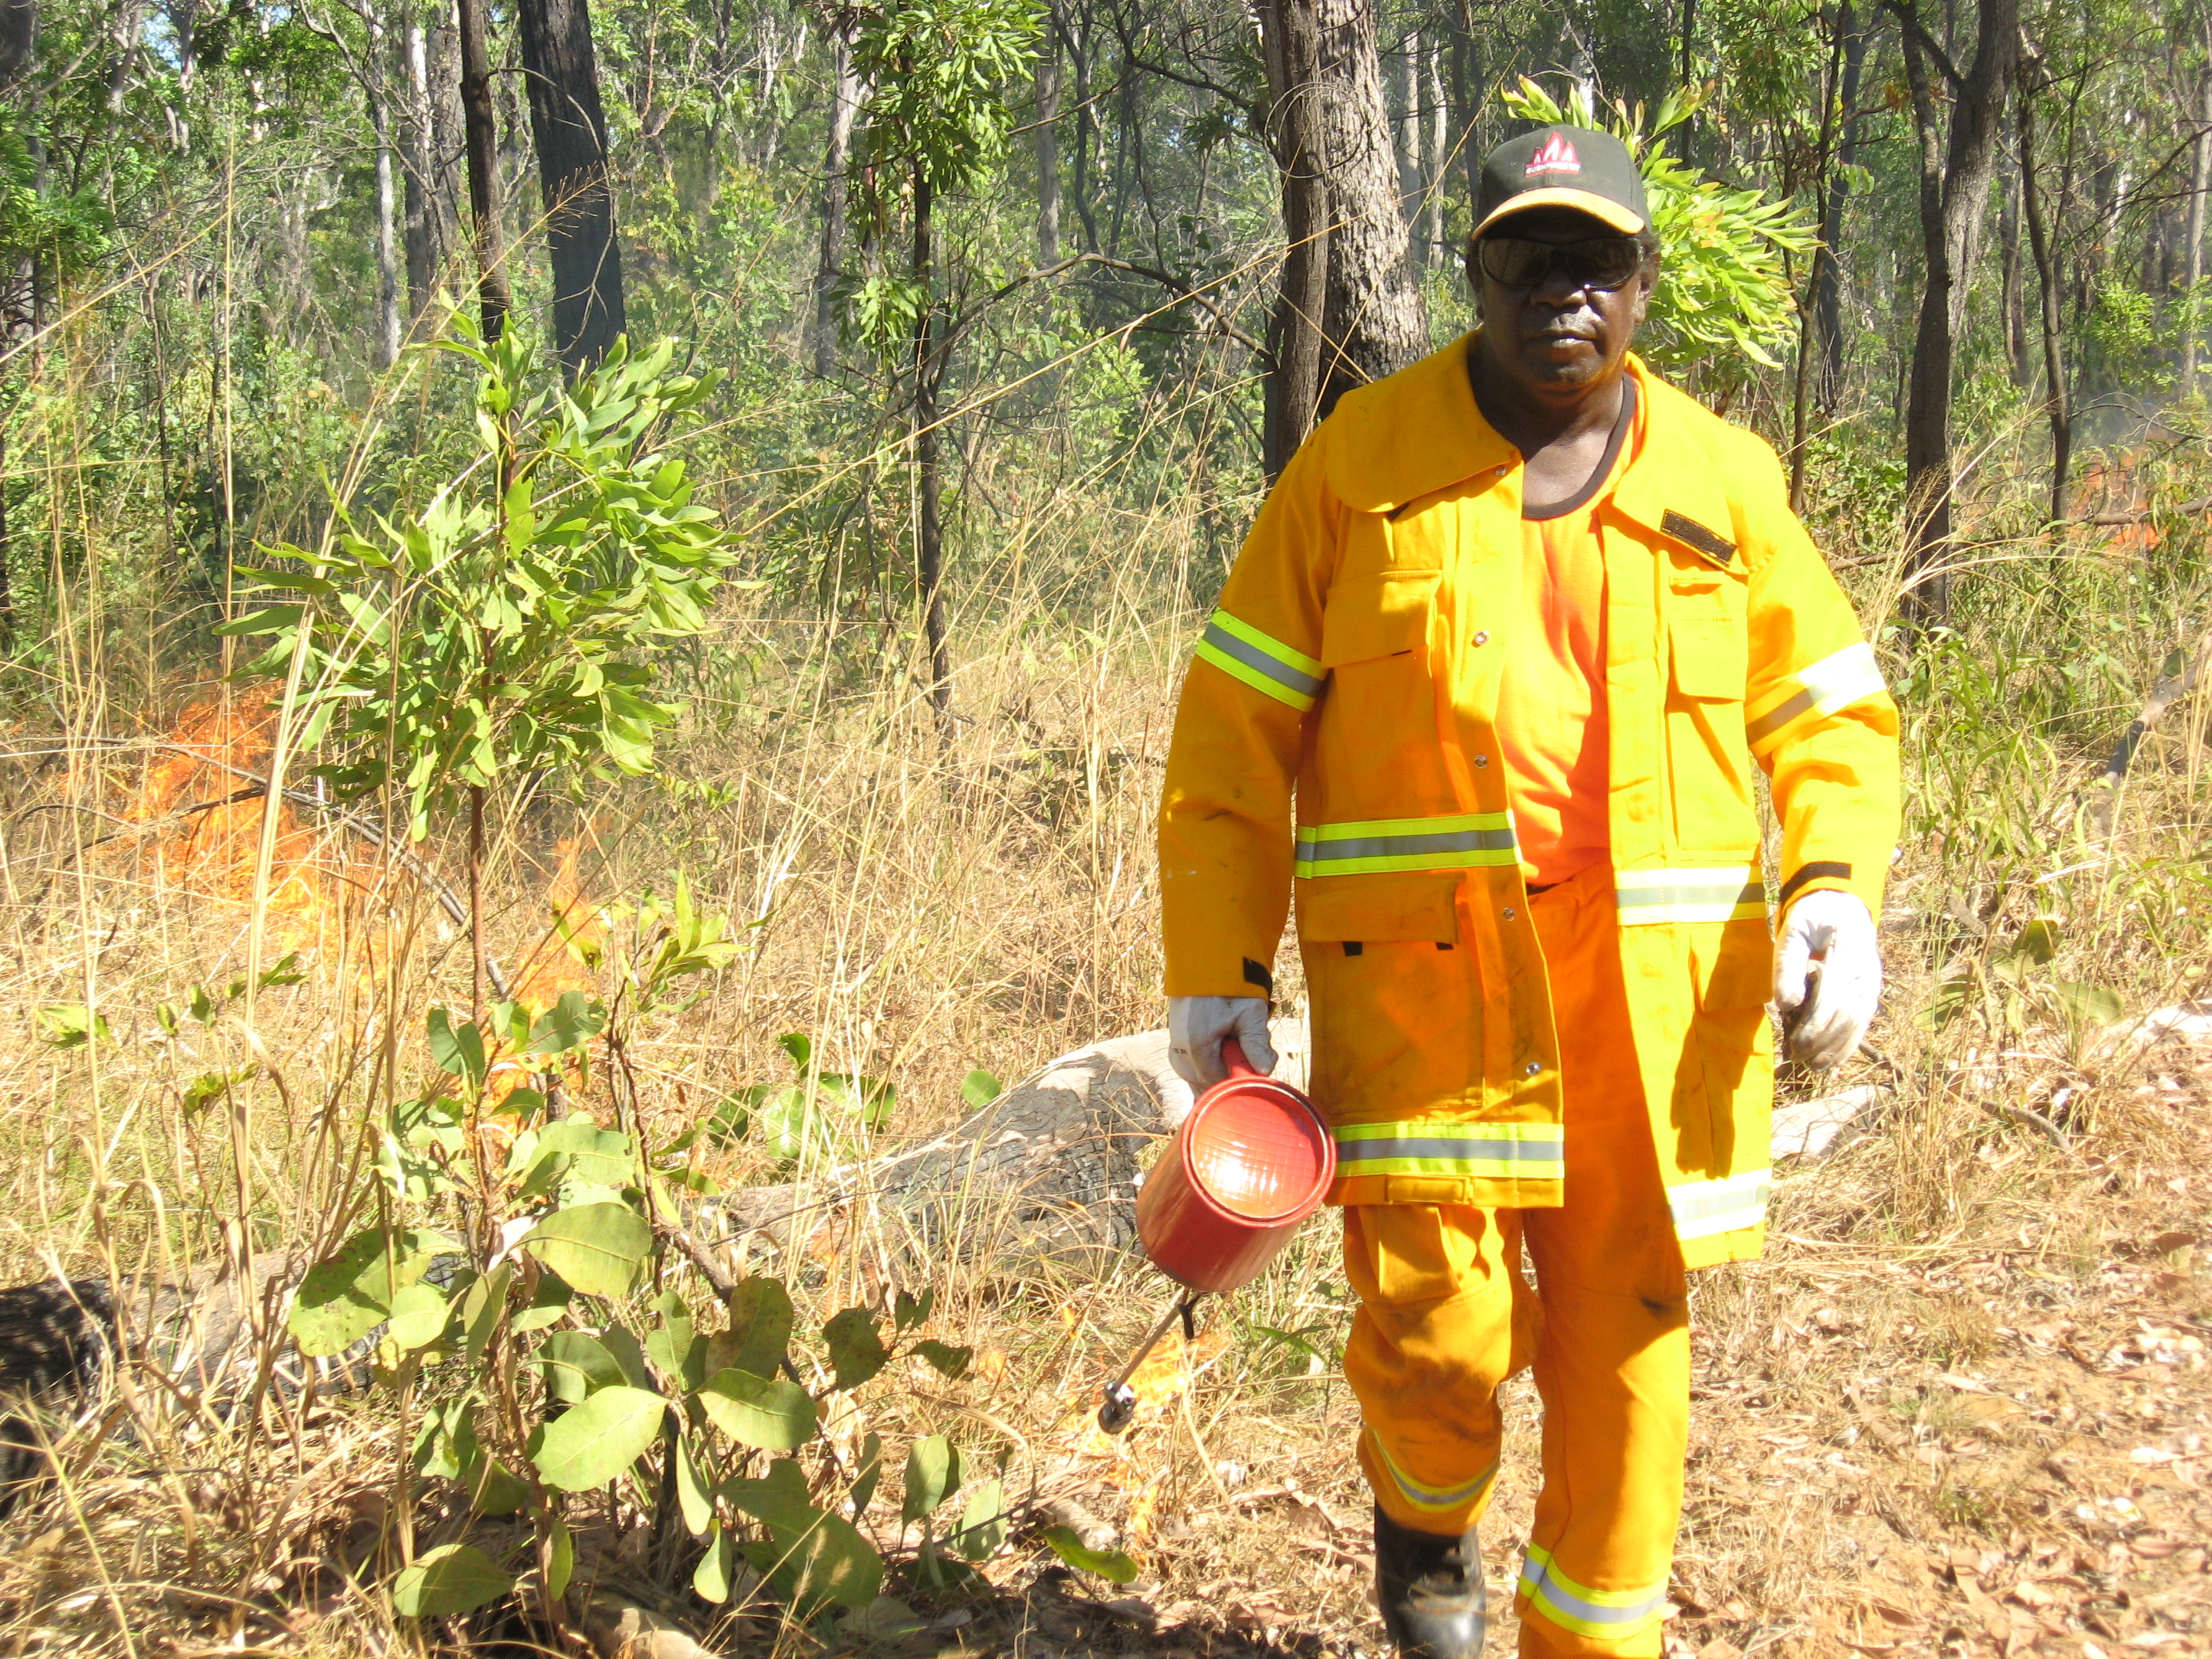 Rangers fight loss of wildlife with fire